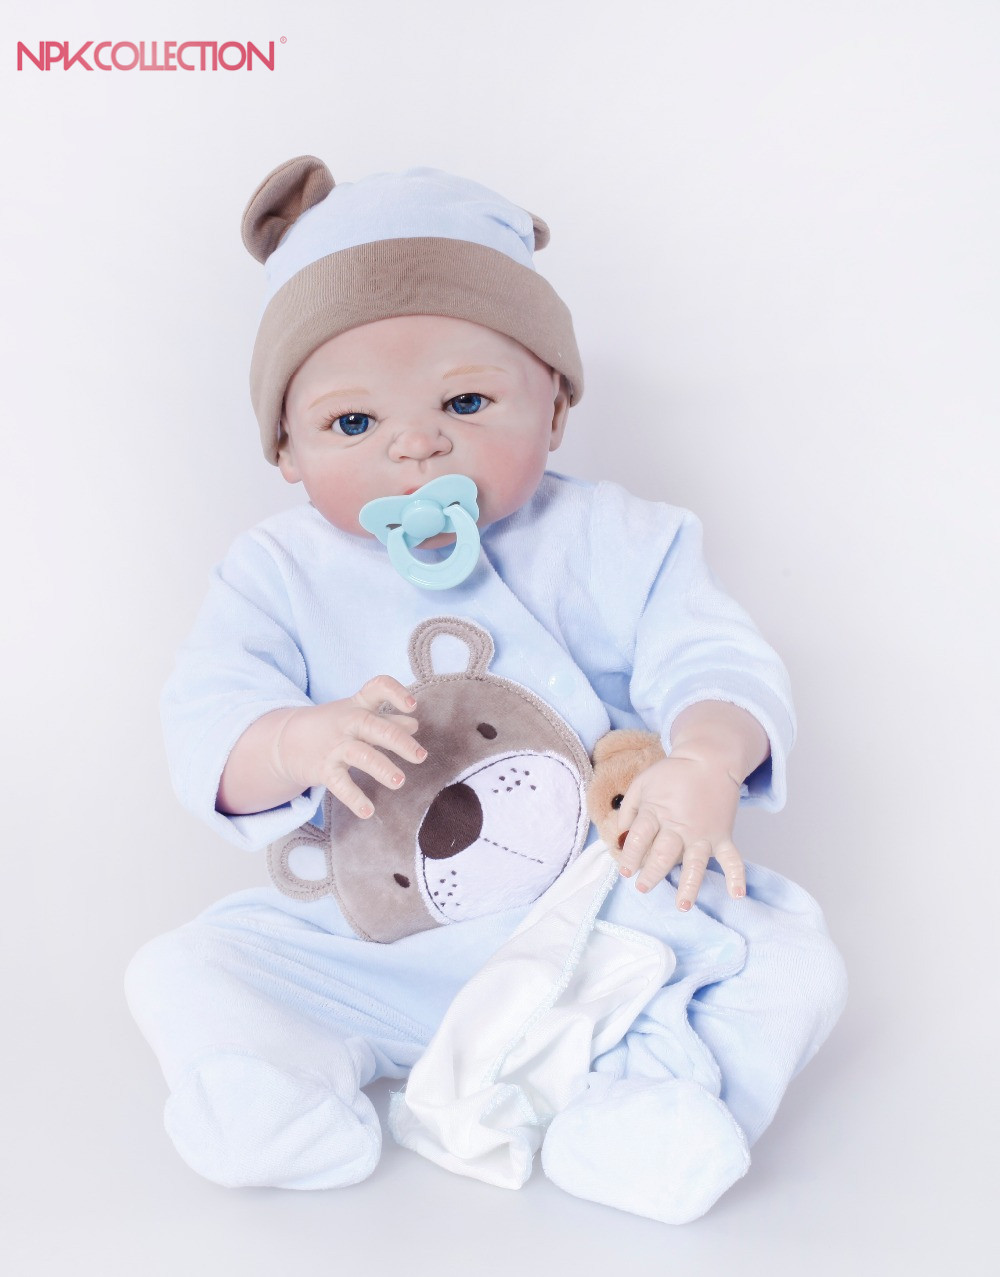 NPK Reborn Baby Dolls Realistic 23 inch Baby Dolls Alive Reborns Toddler bebe Washable Toy For kids Gifts npk hot sale reborn baby dolls realistic girl princess 23 inch baby dolls alive reborns toddler bebe washable toy for kids gifts